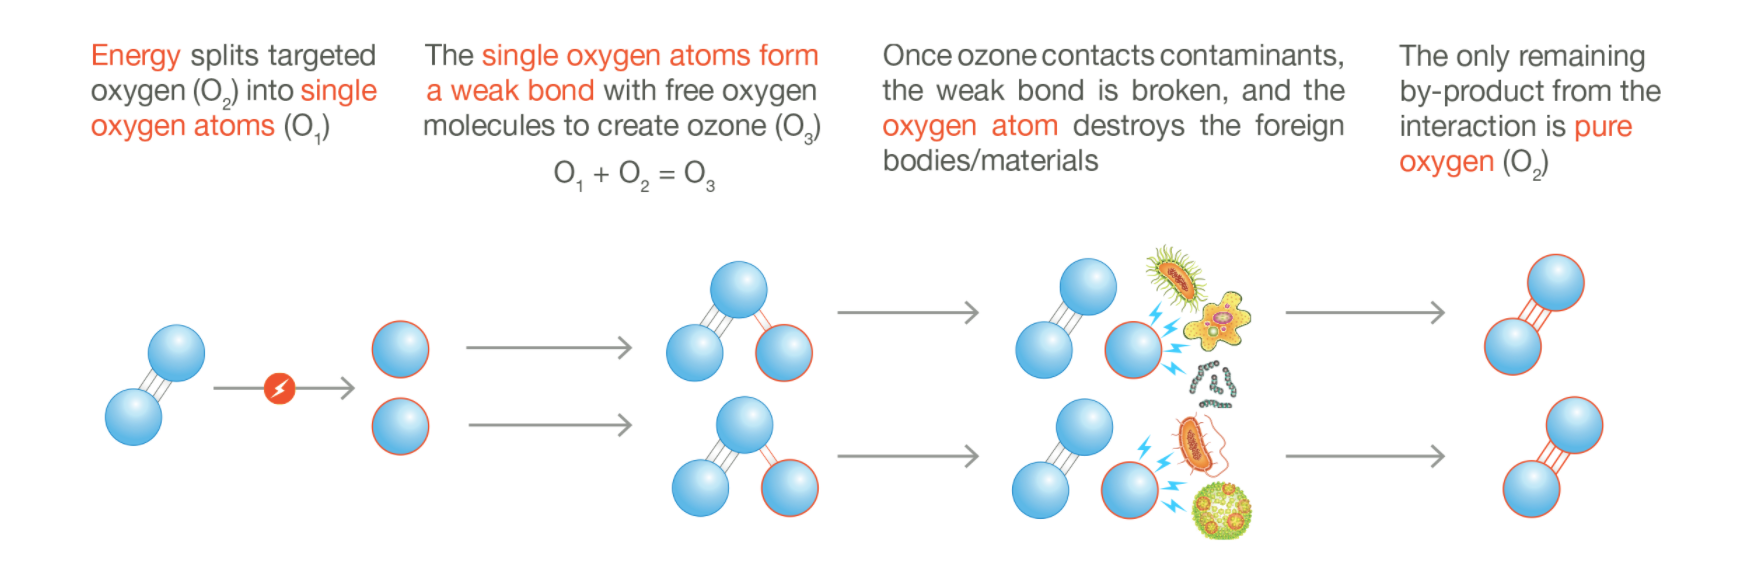 ozone reacting to contaminants